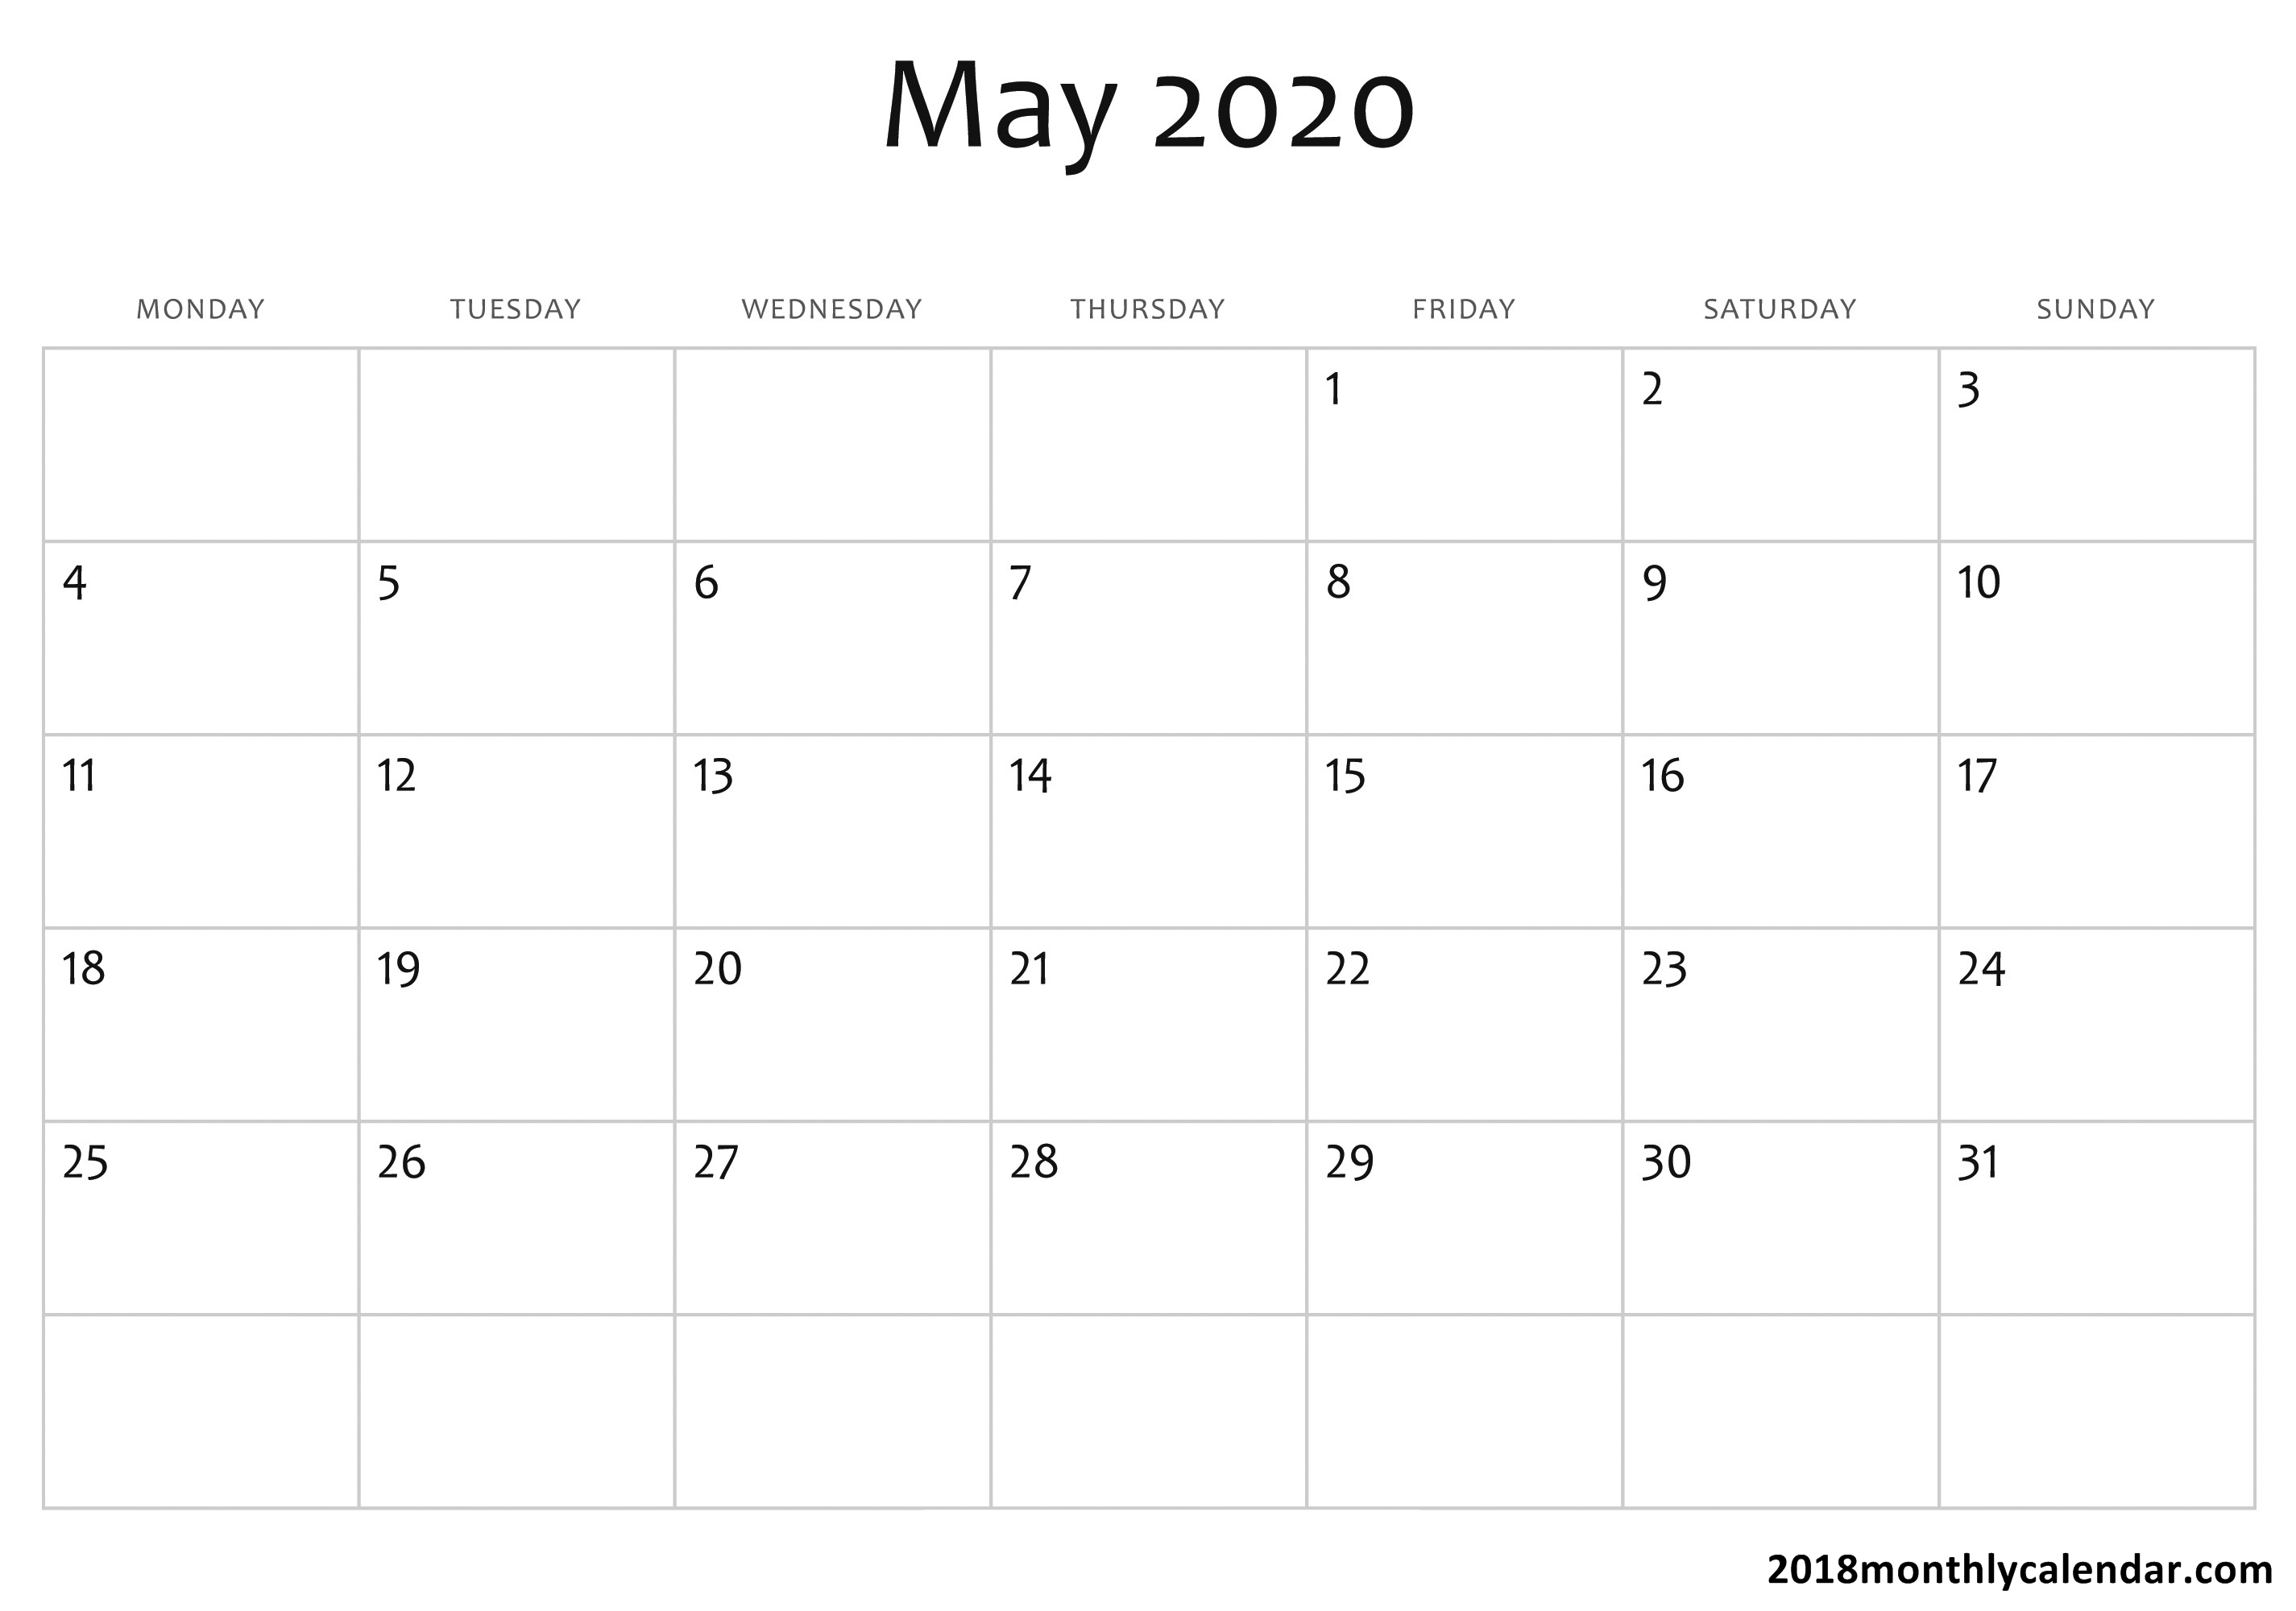 Download May 2020 Calendar – Blank & Editable for 2020 Calender I Can Edit